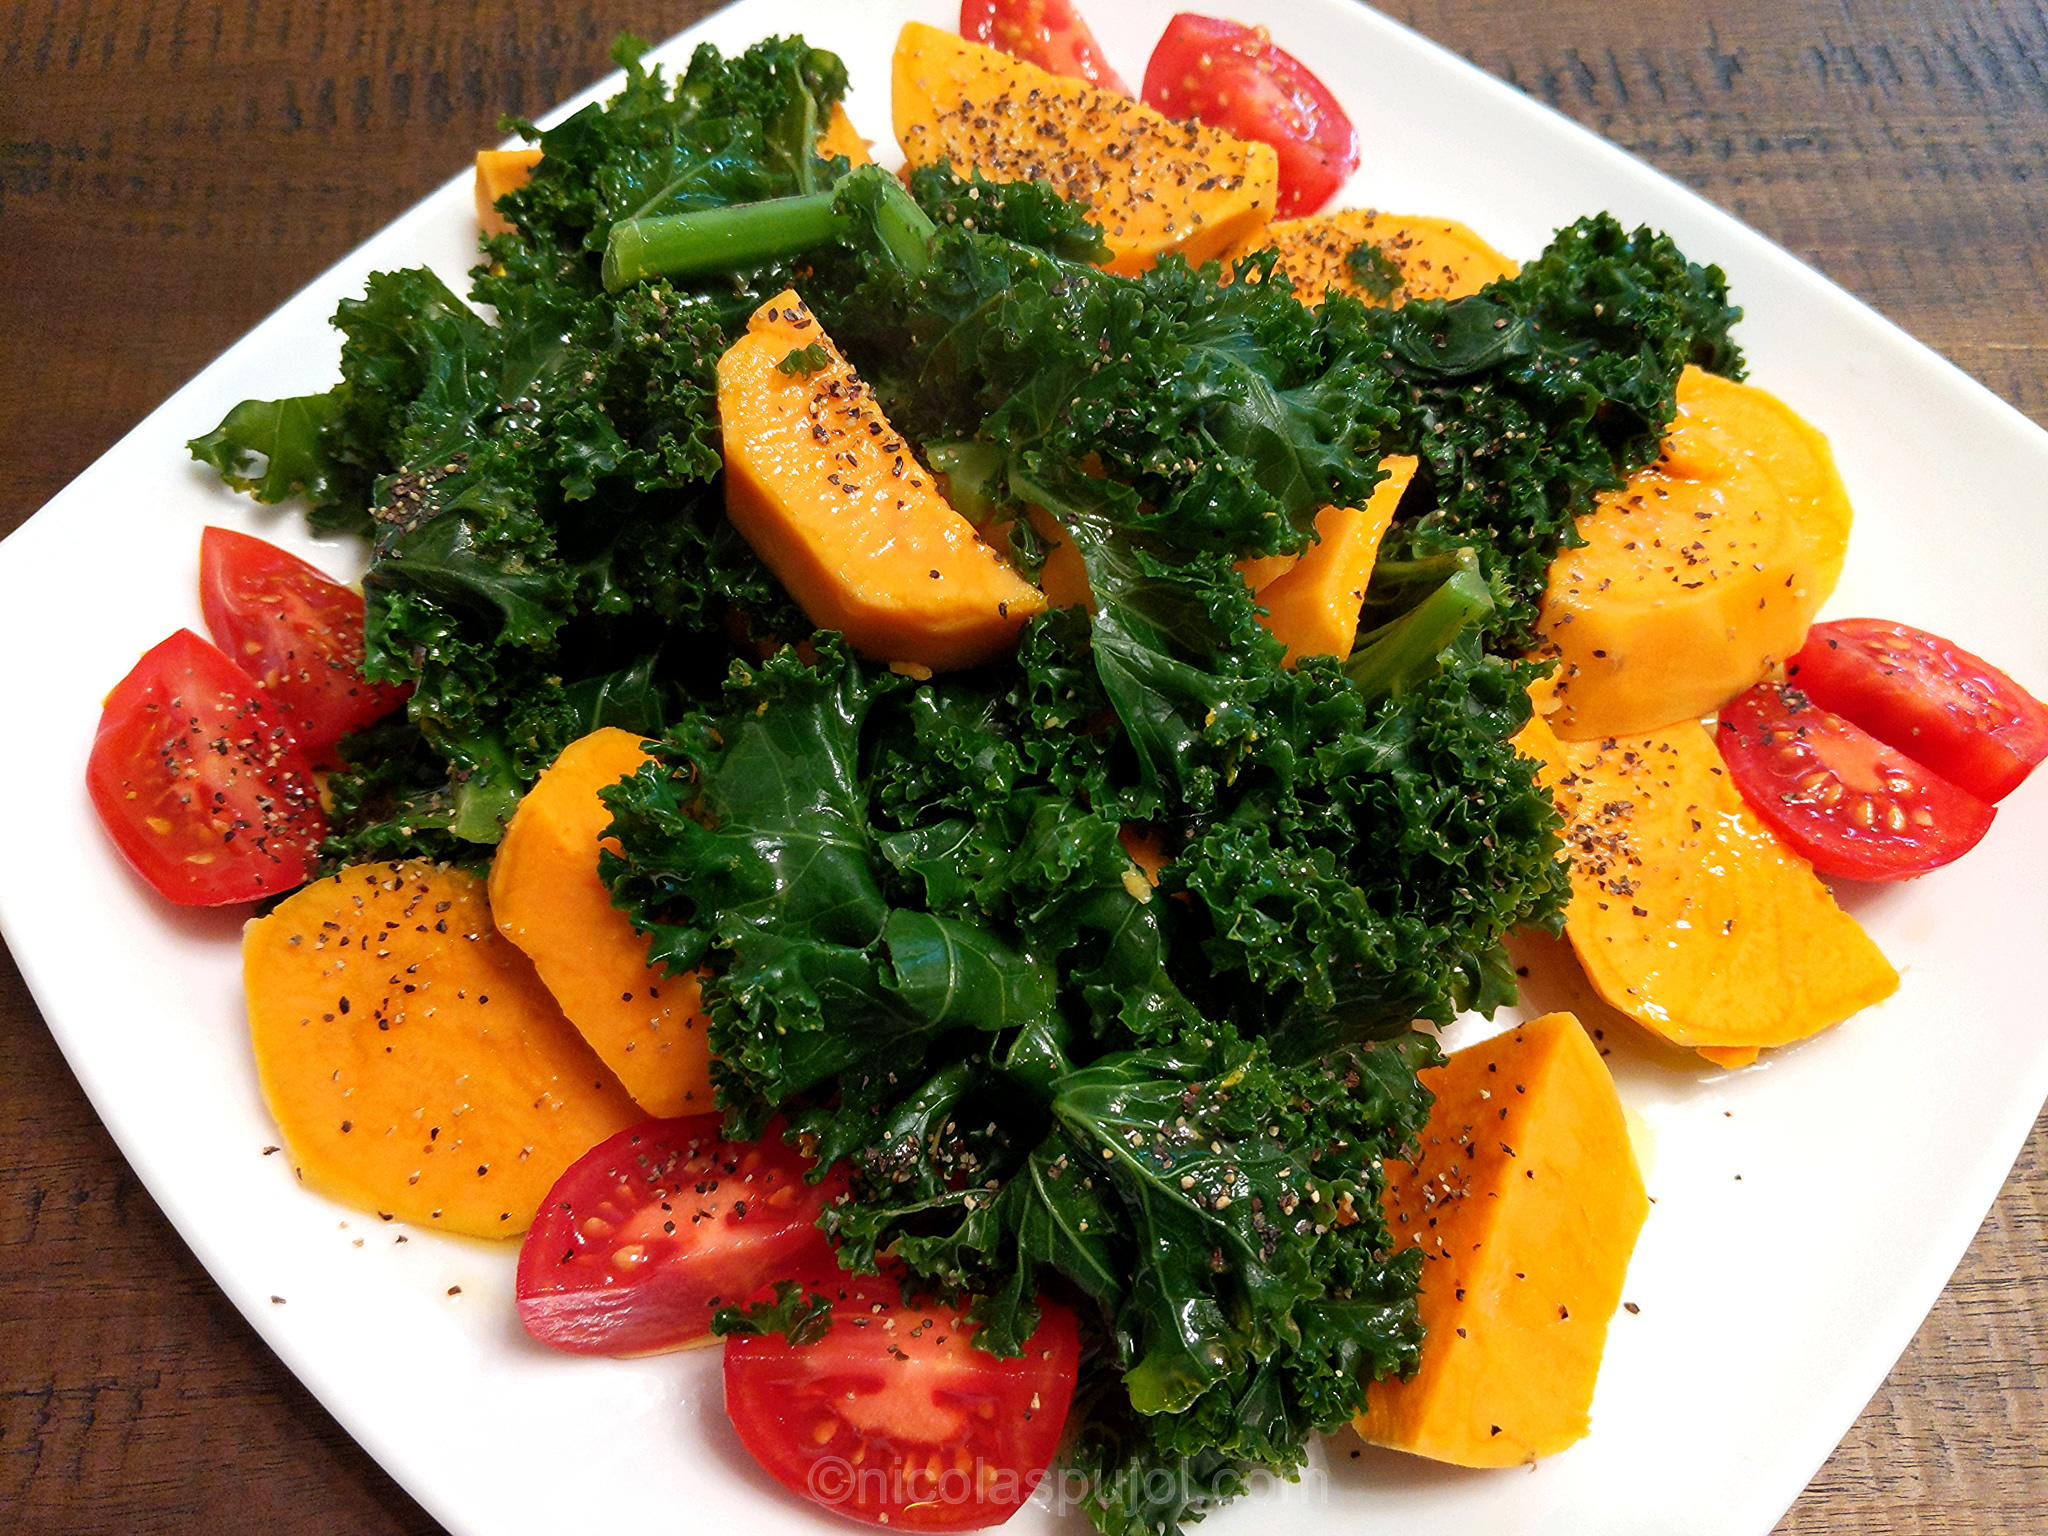 Steamed kale salad with sweet potatoes